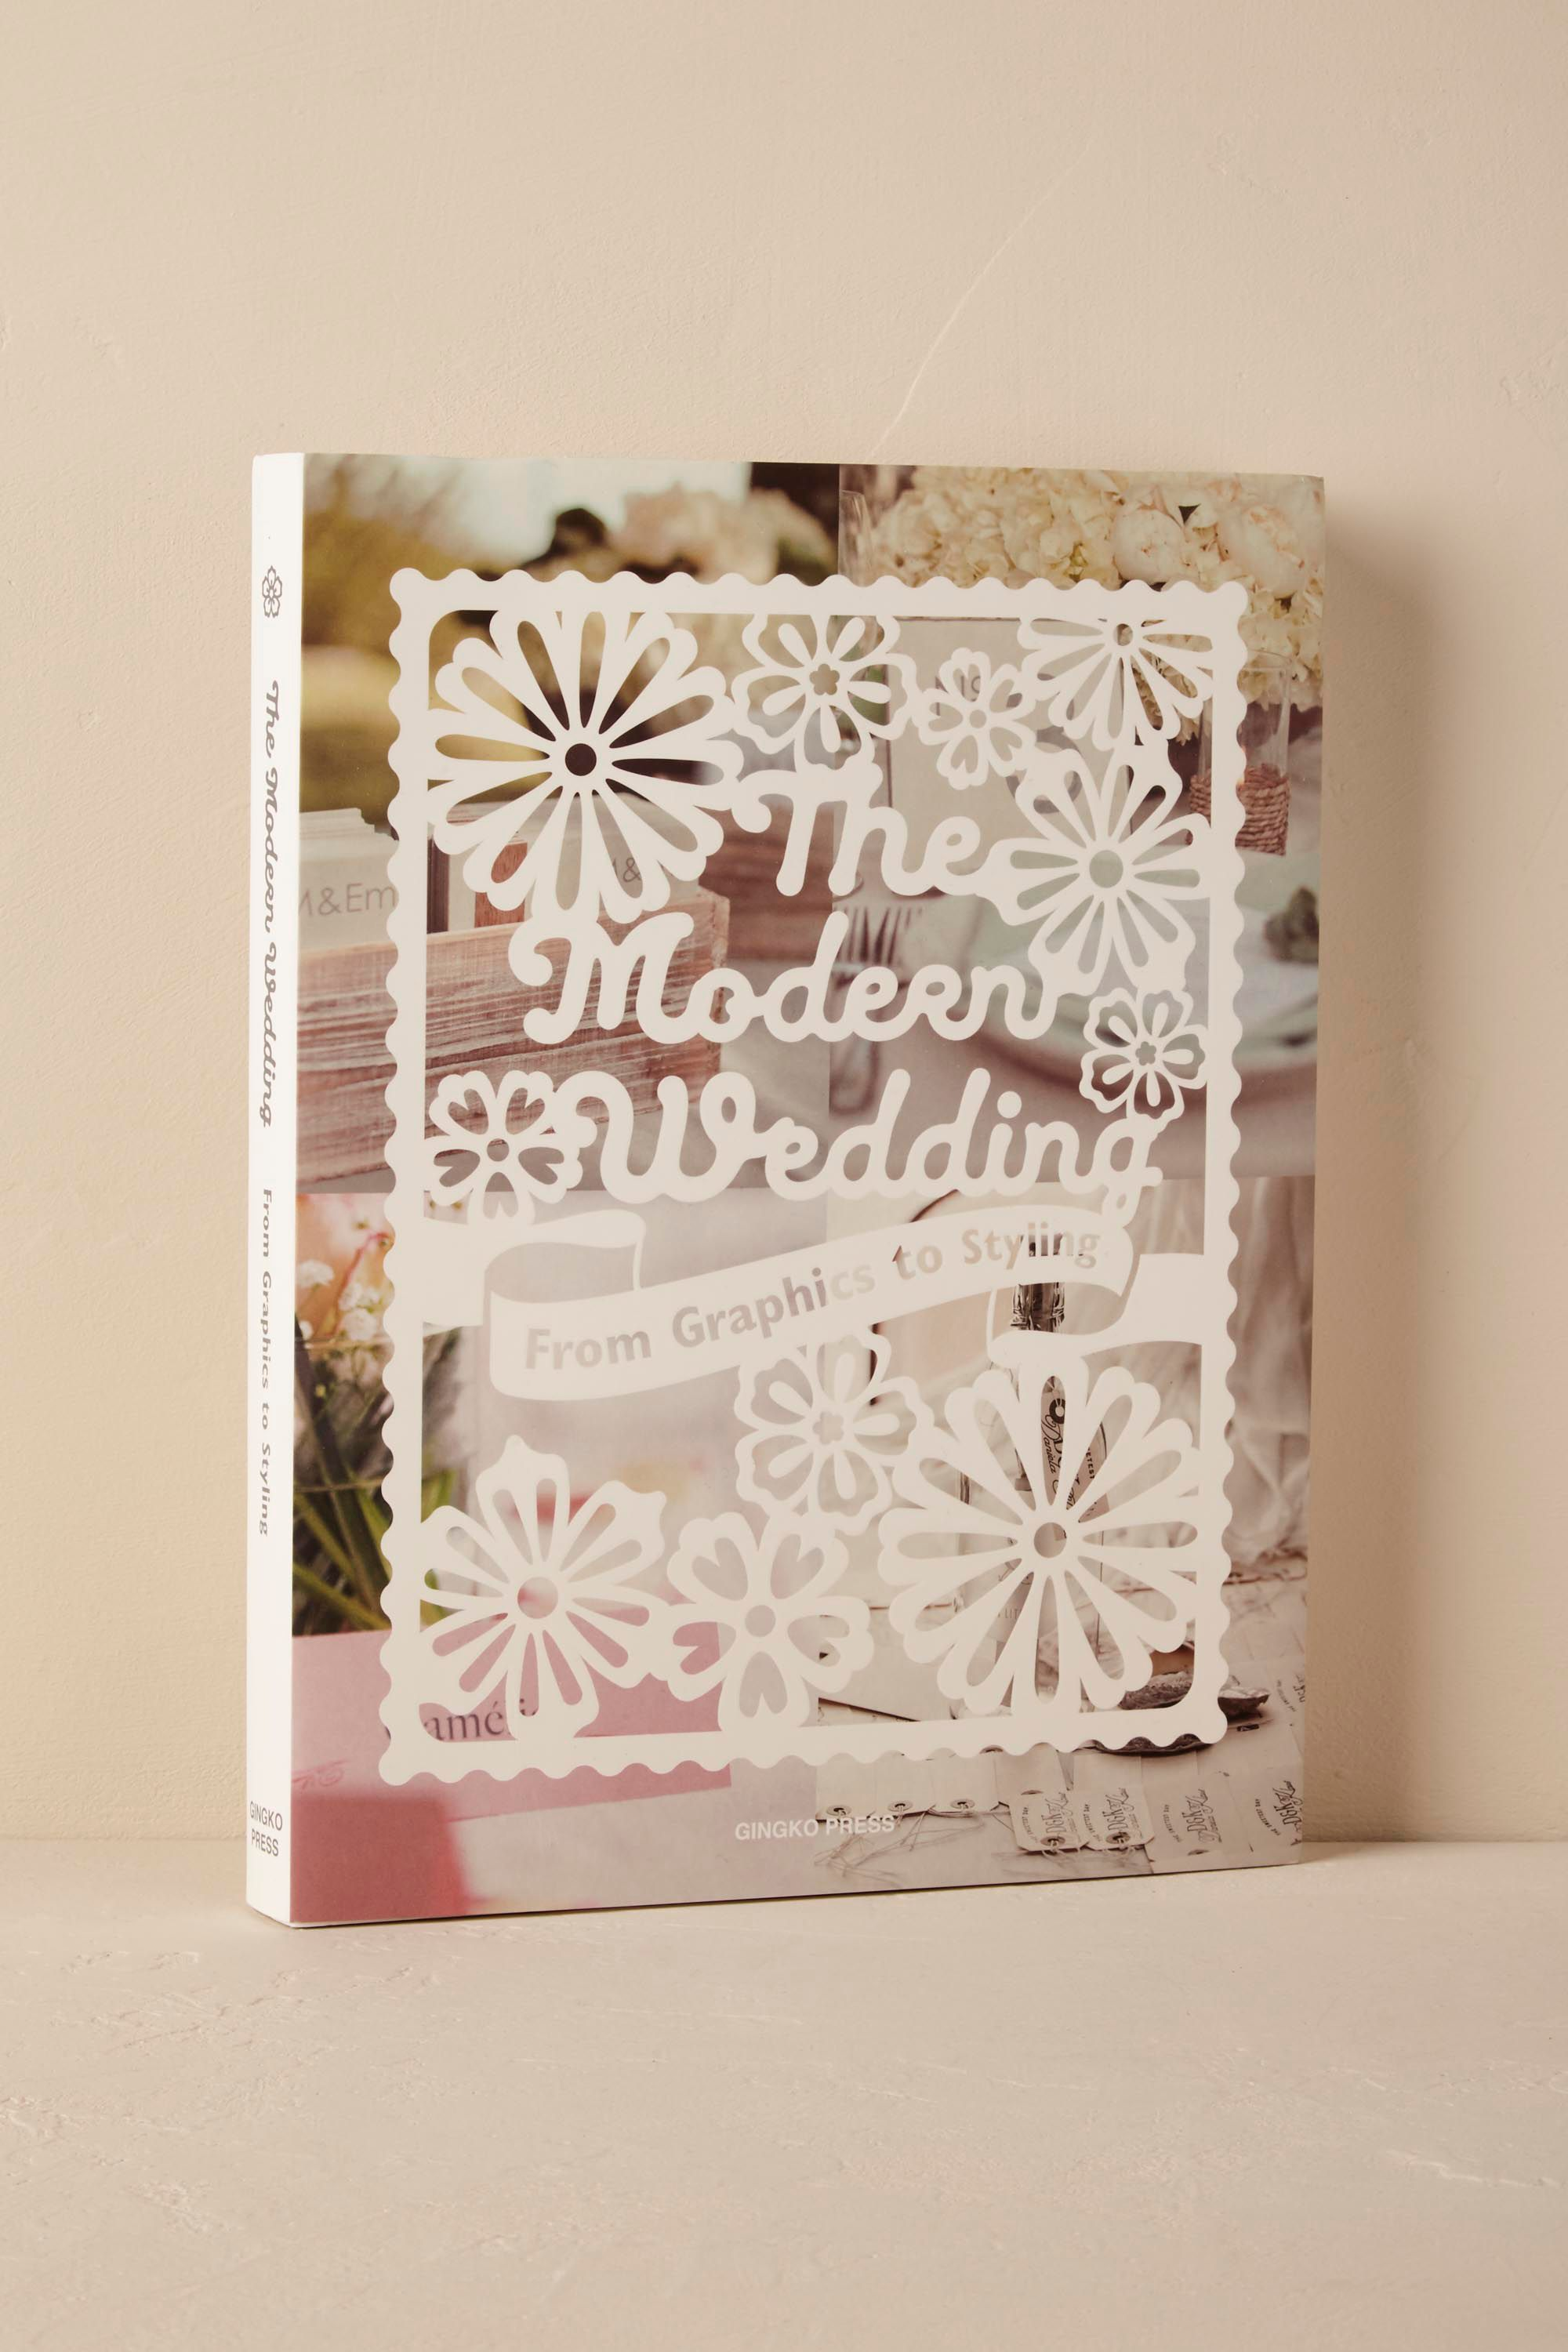 The Modern Wedding—From Graphics to Styling